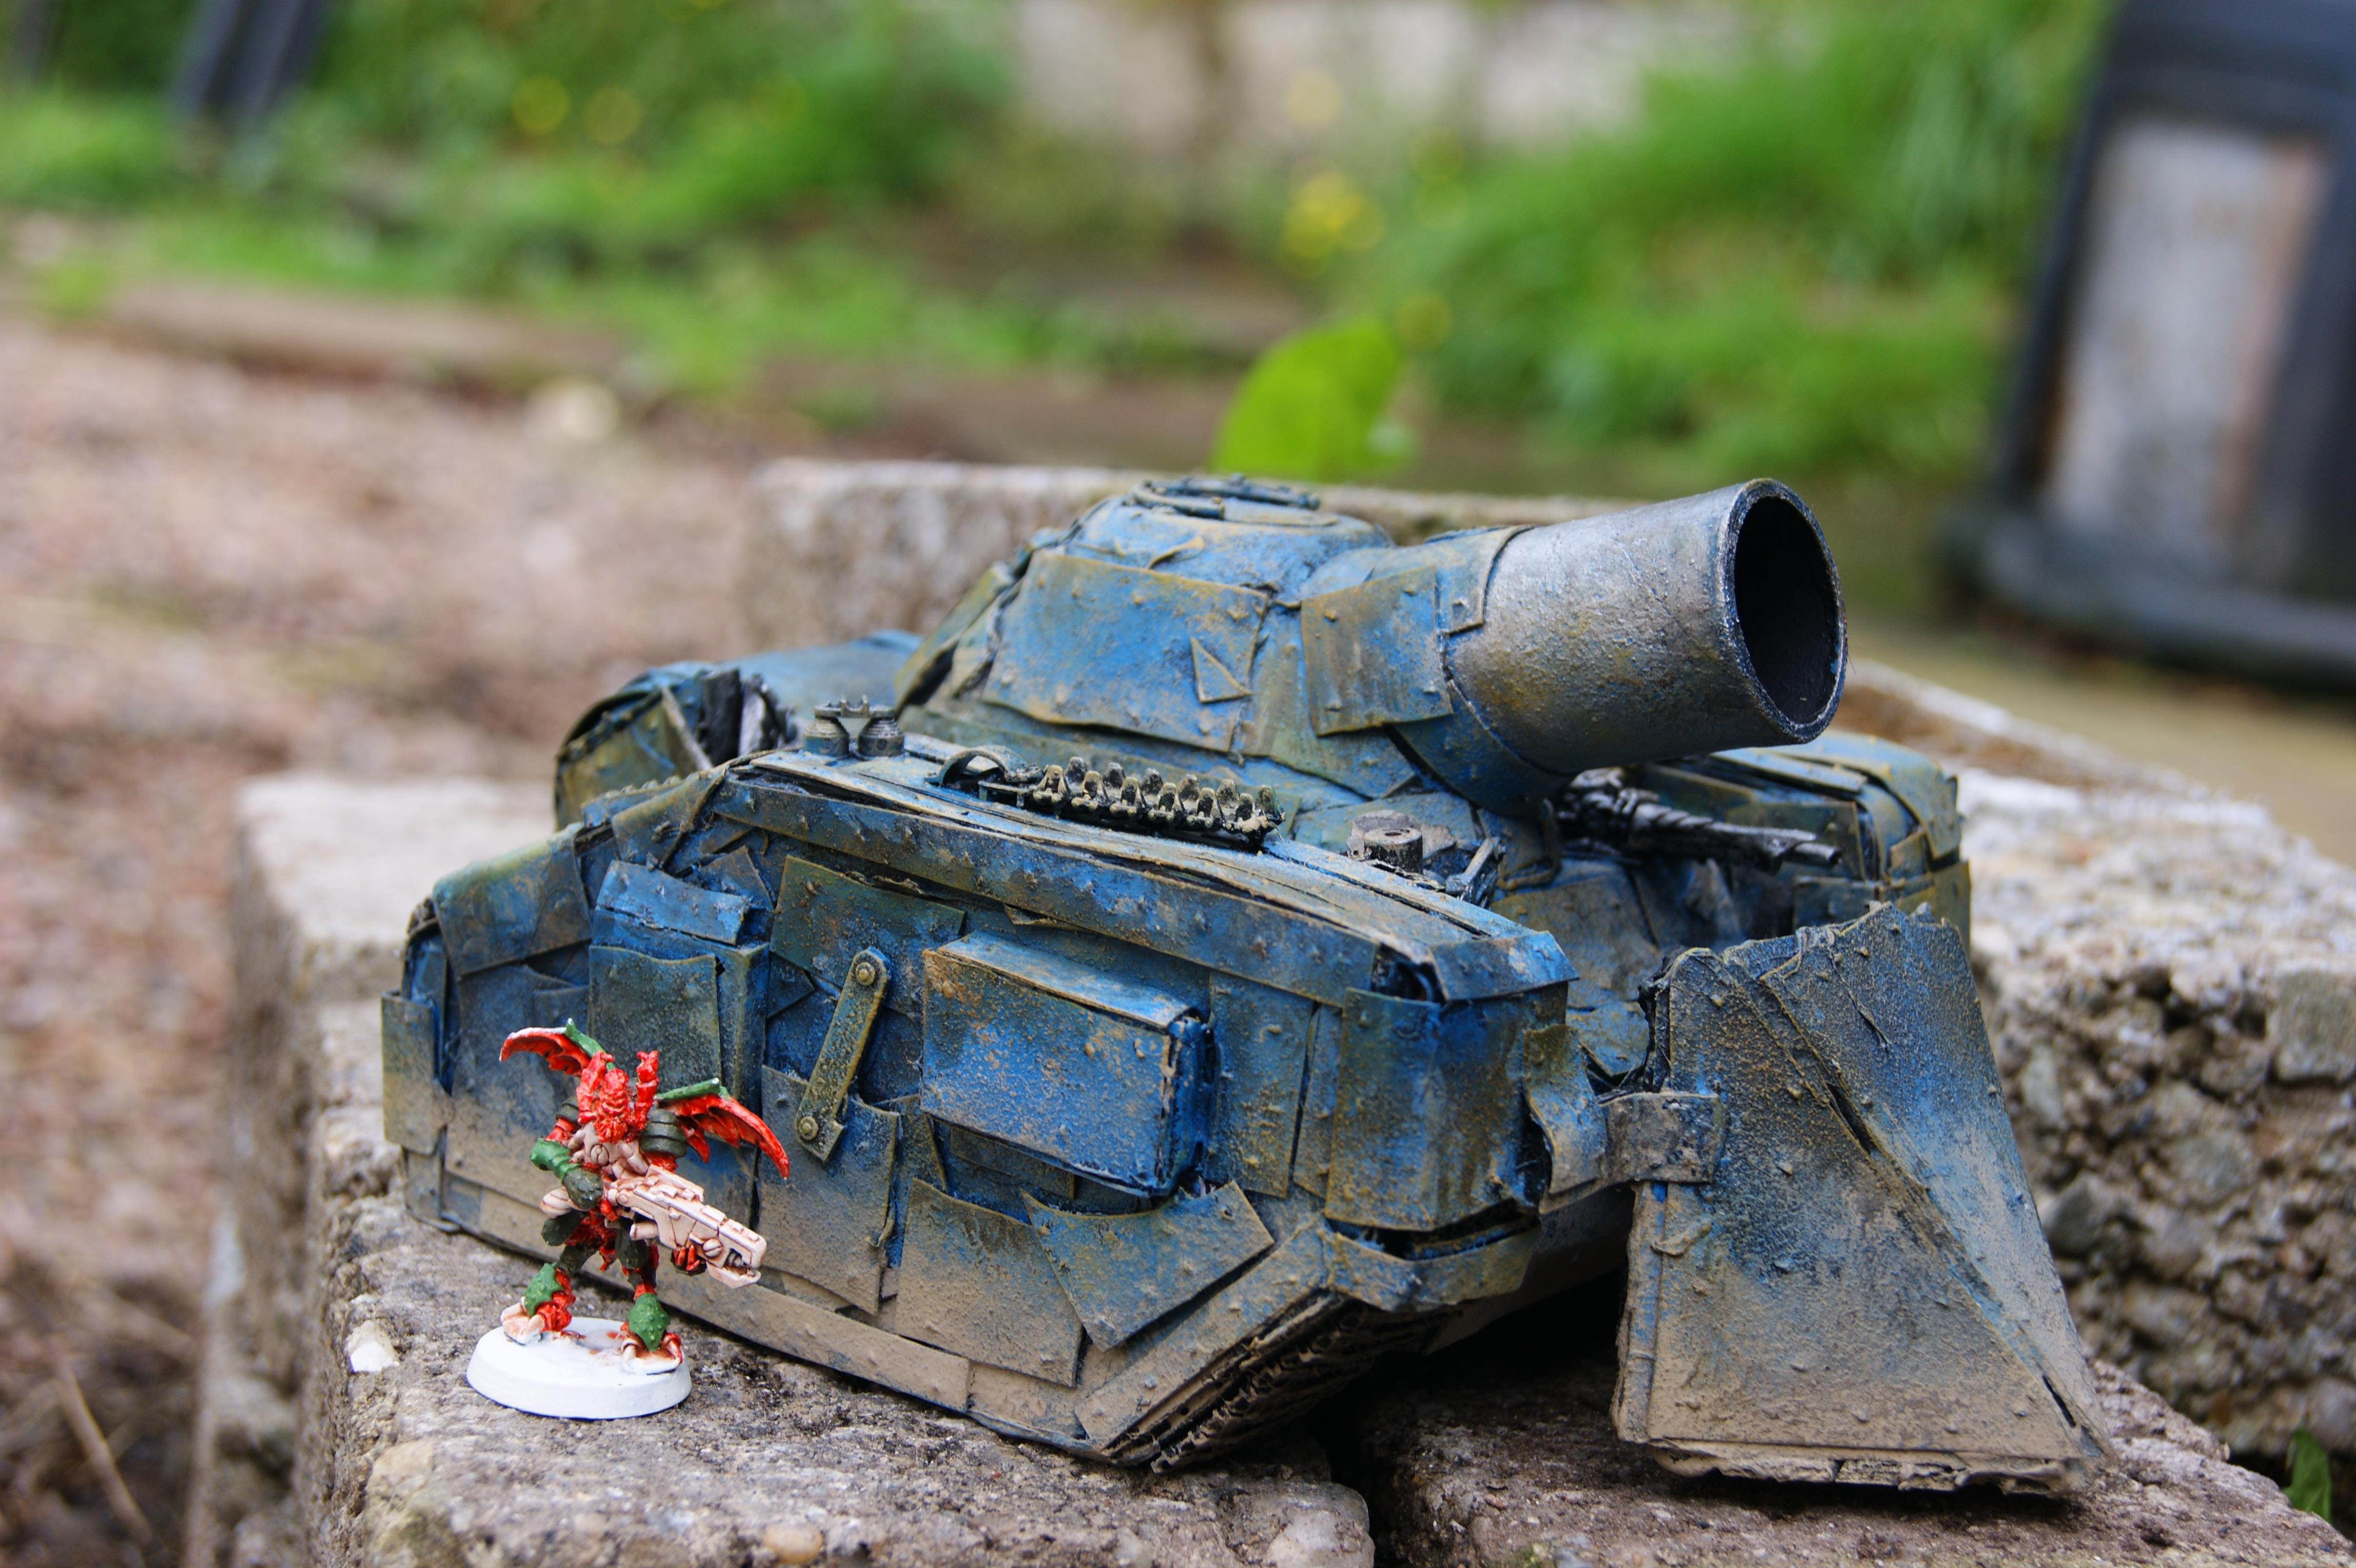 Battlewagon, Boom Gun, Conversion, Dethskullz, Killkannon, Looted Wagon, Orks, Painted, Trukk, Warhammer 40,000